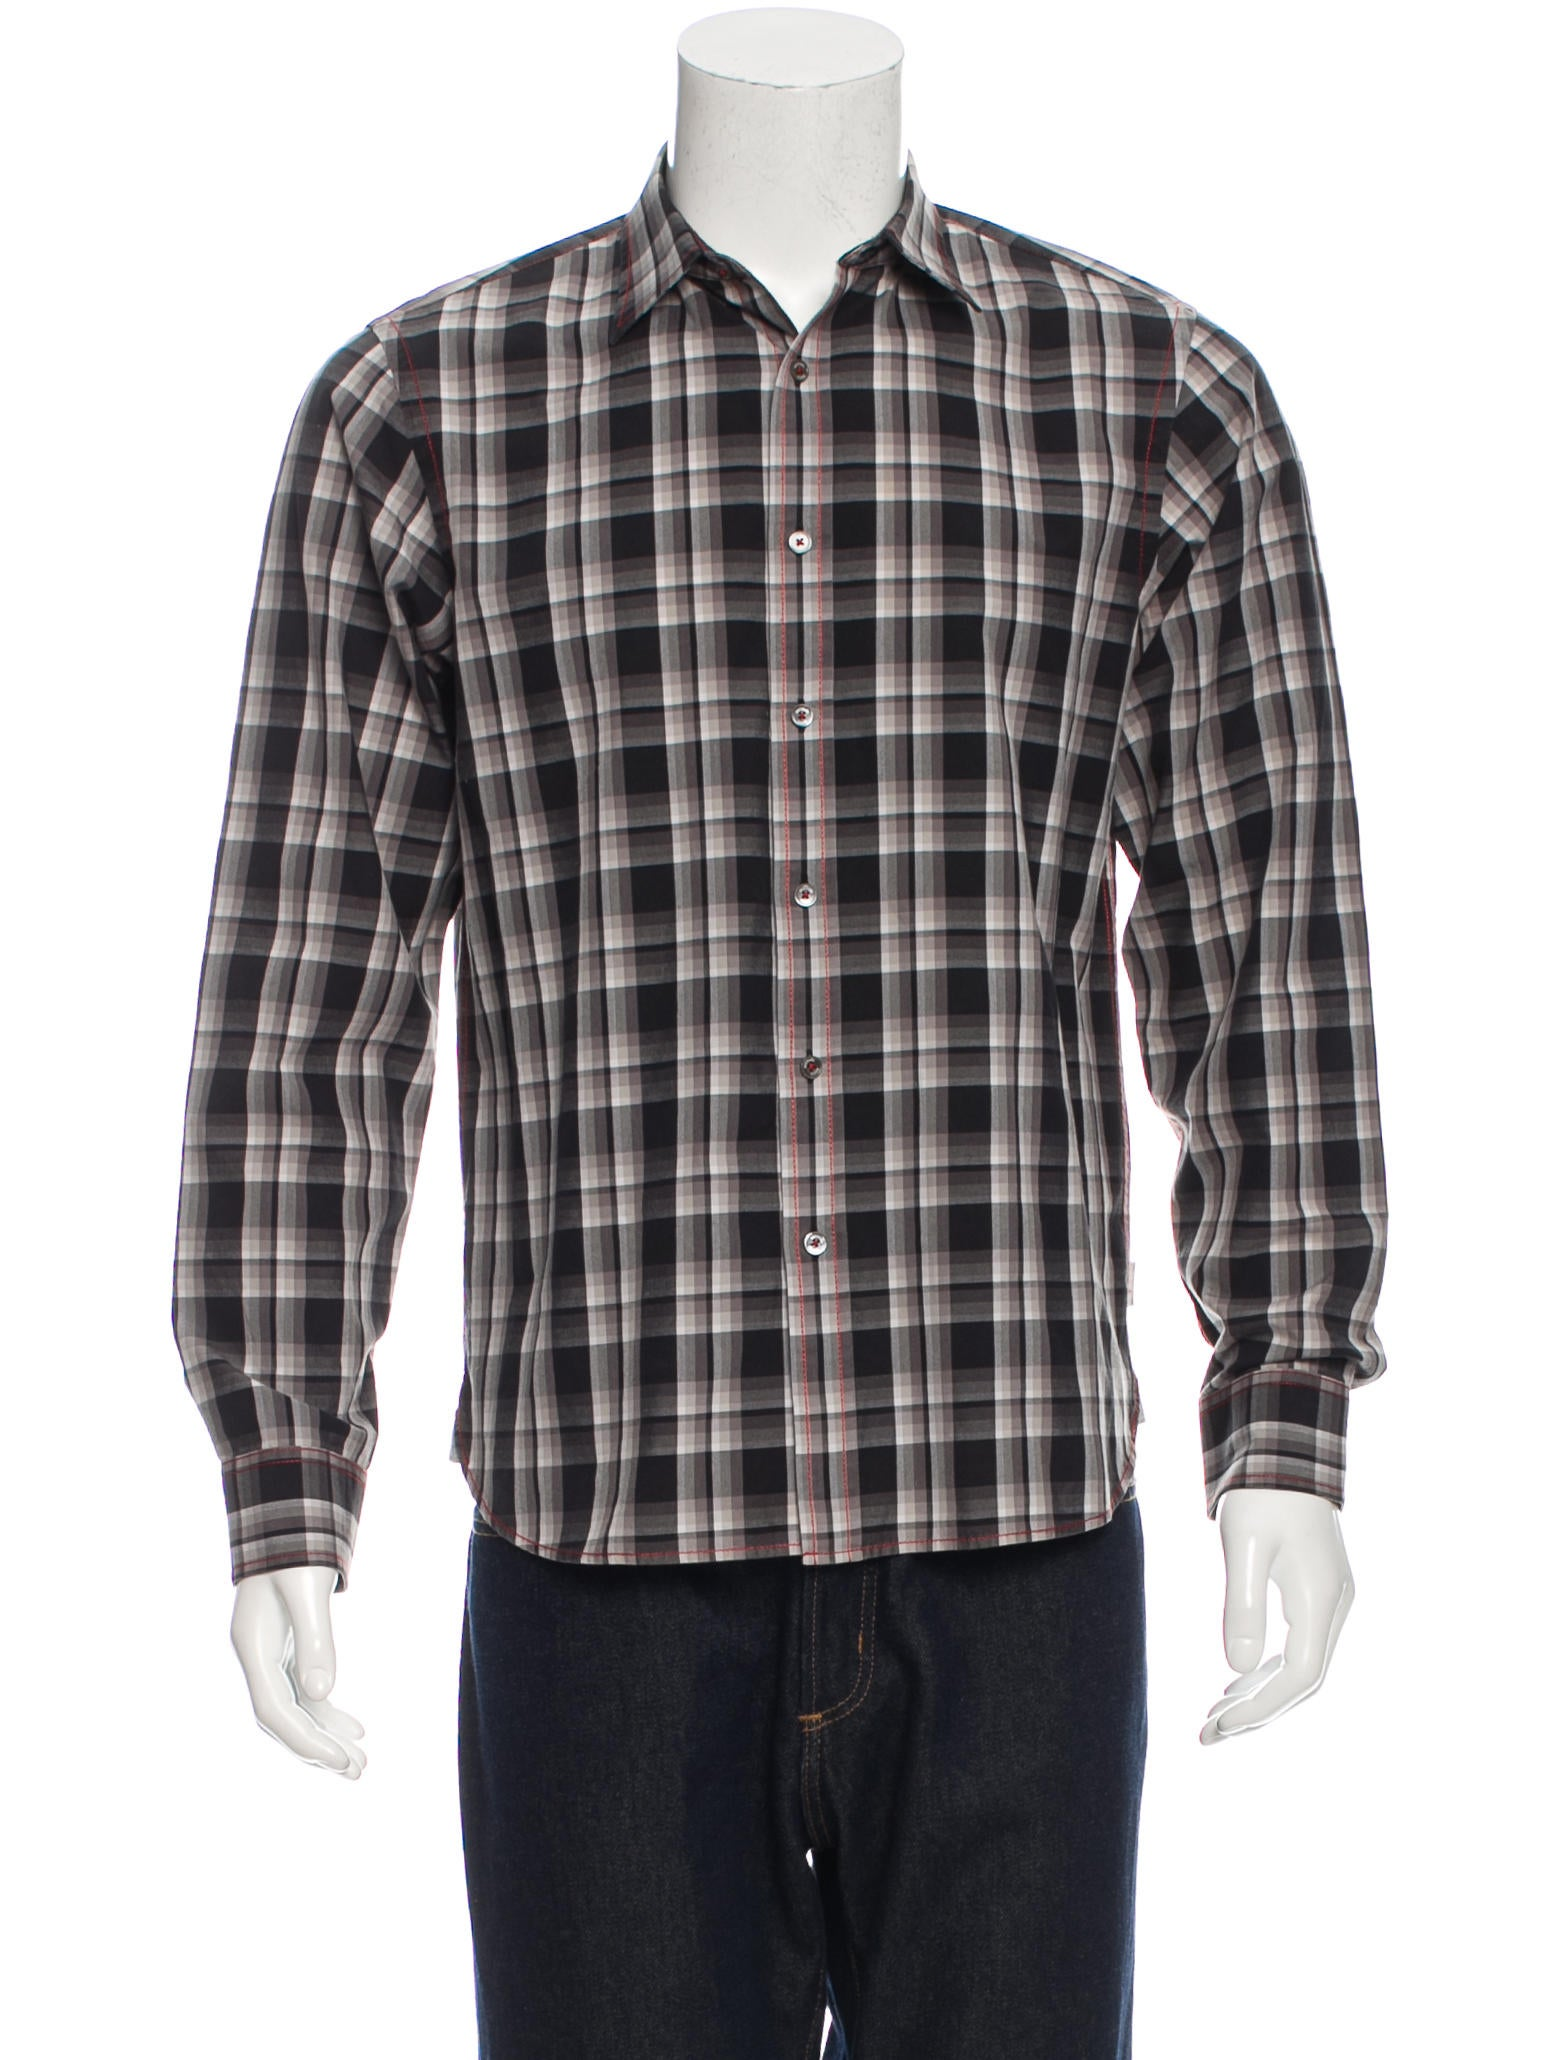 michael kors plaid button up shirt clothing mic50478 the realreal. Black Bedroom Furniture Sets. Home Design Ideas